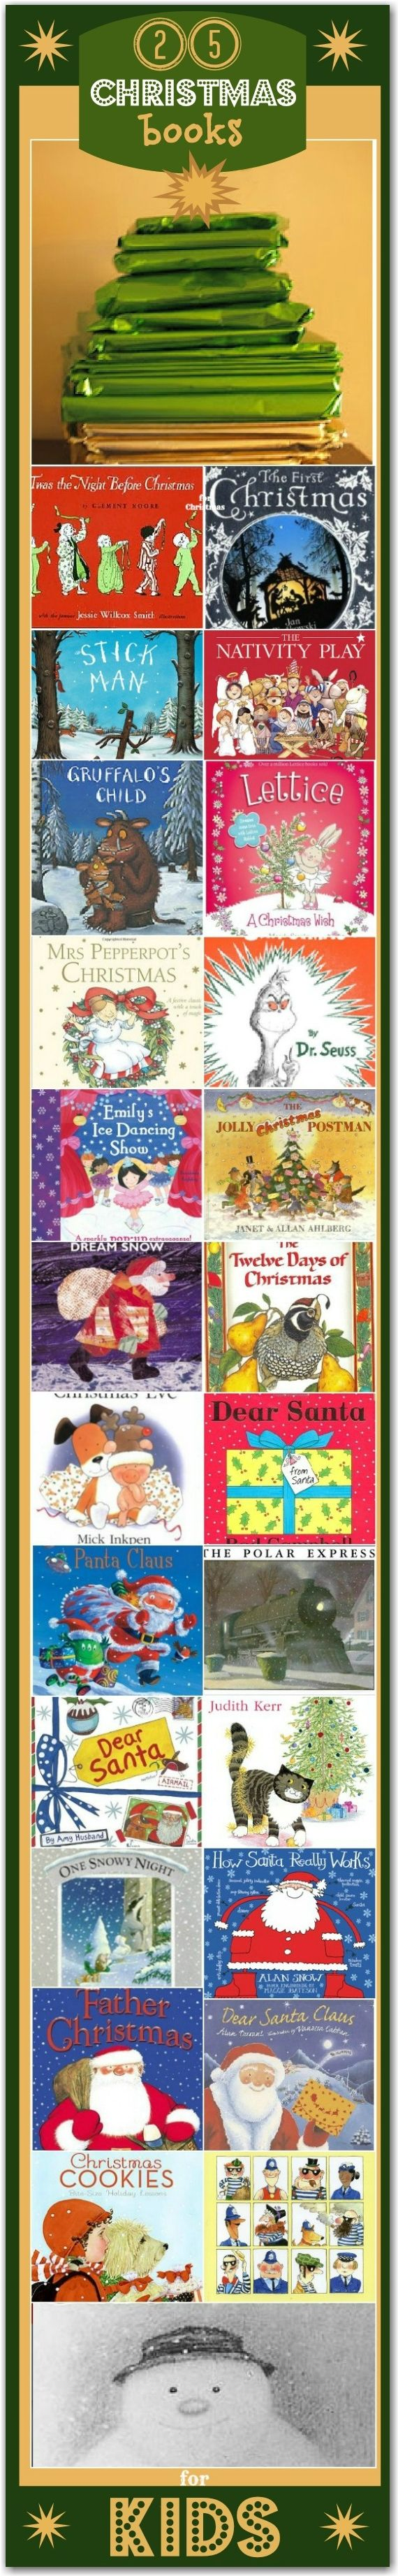 25 Books for Christmas...A special Holiday tradition to share with a child: Wrap 25 books and place them under tree with cuddly blanket -- every day open a book to read together before bed ♥